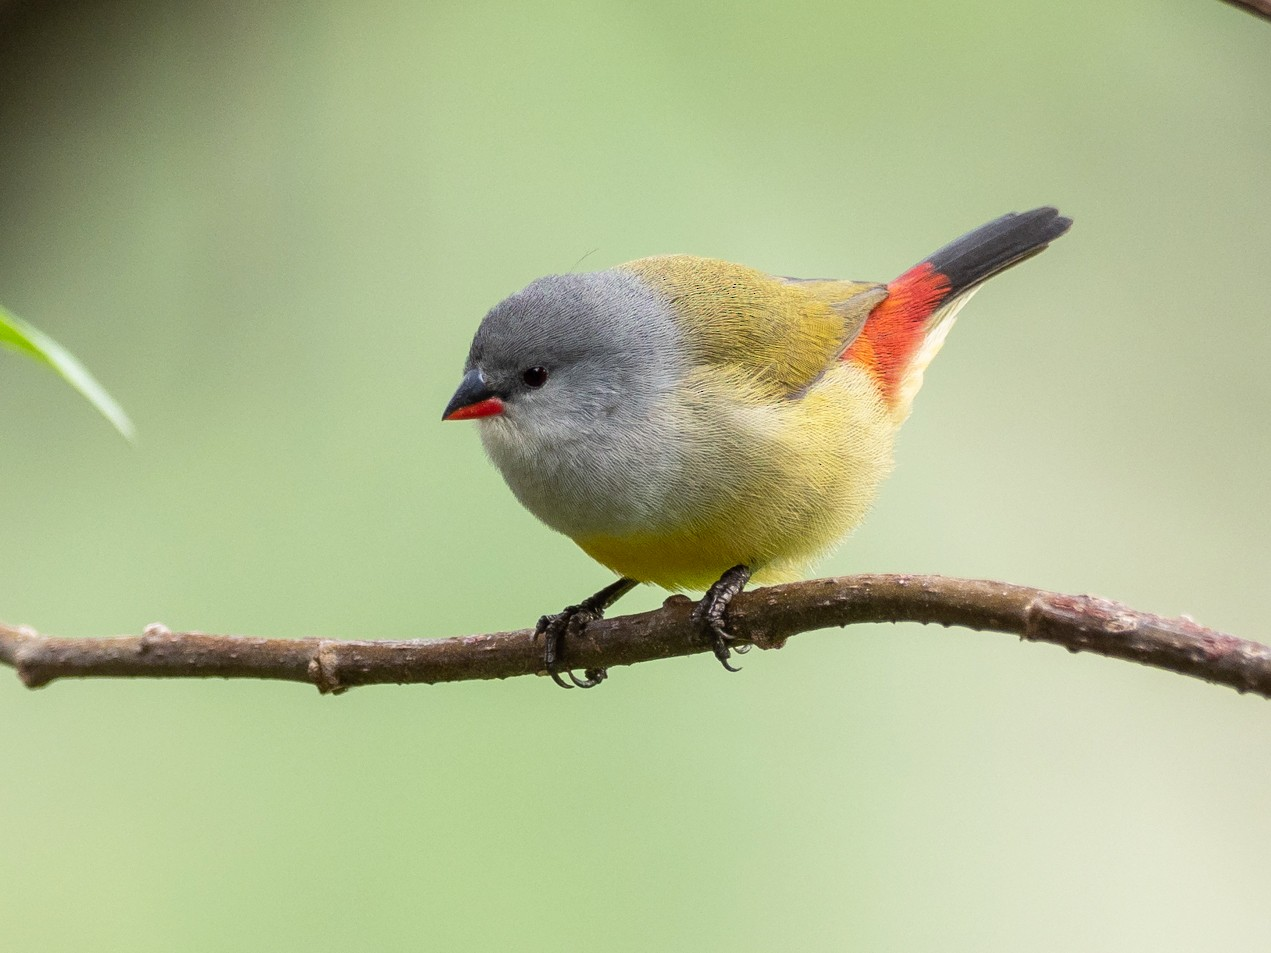 Yellow-bellied Waxbill - Forest Jarvis